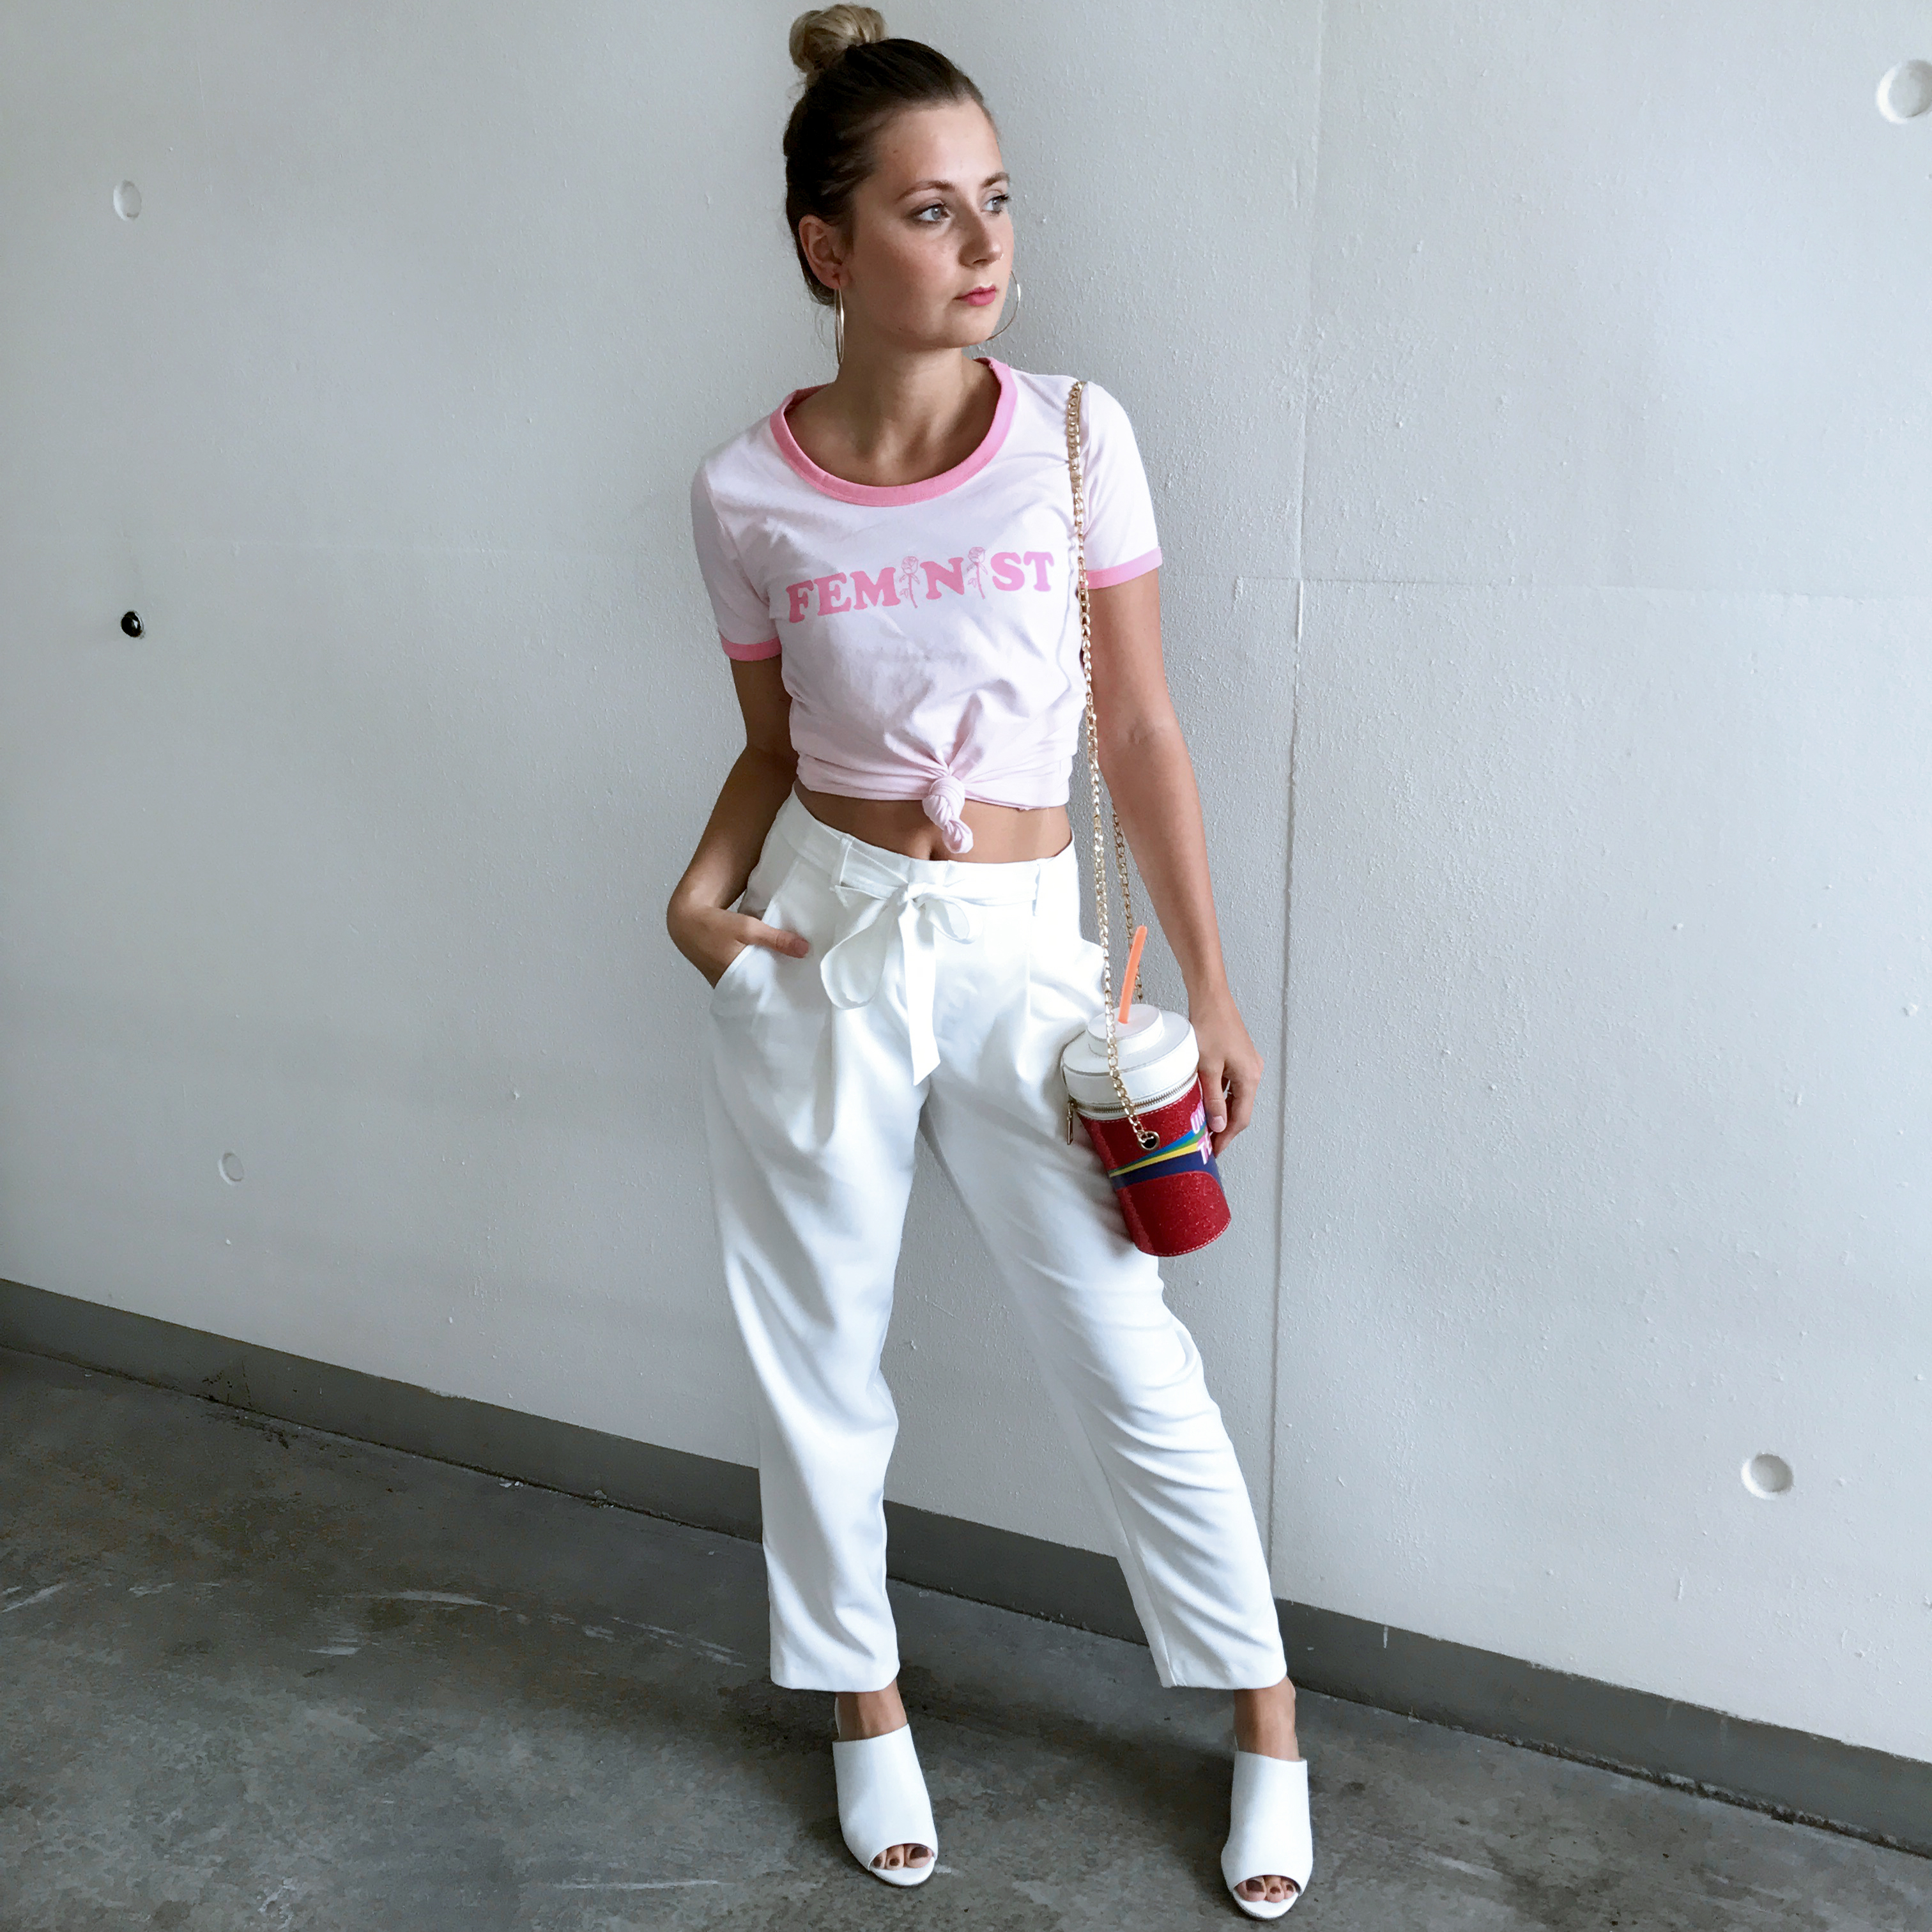 feminist-new-look-mules-bindehose-style-comfy-stylish-modeblogger-fashionblogger